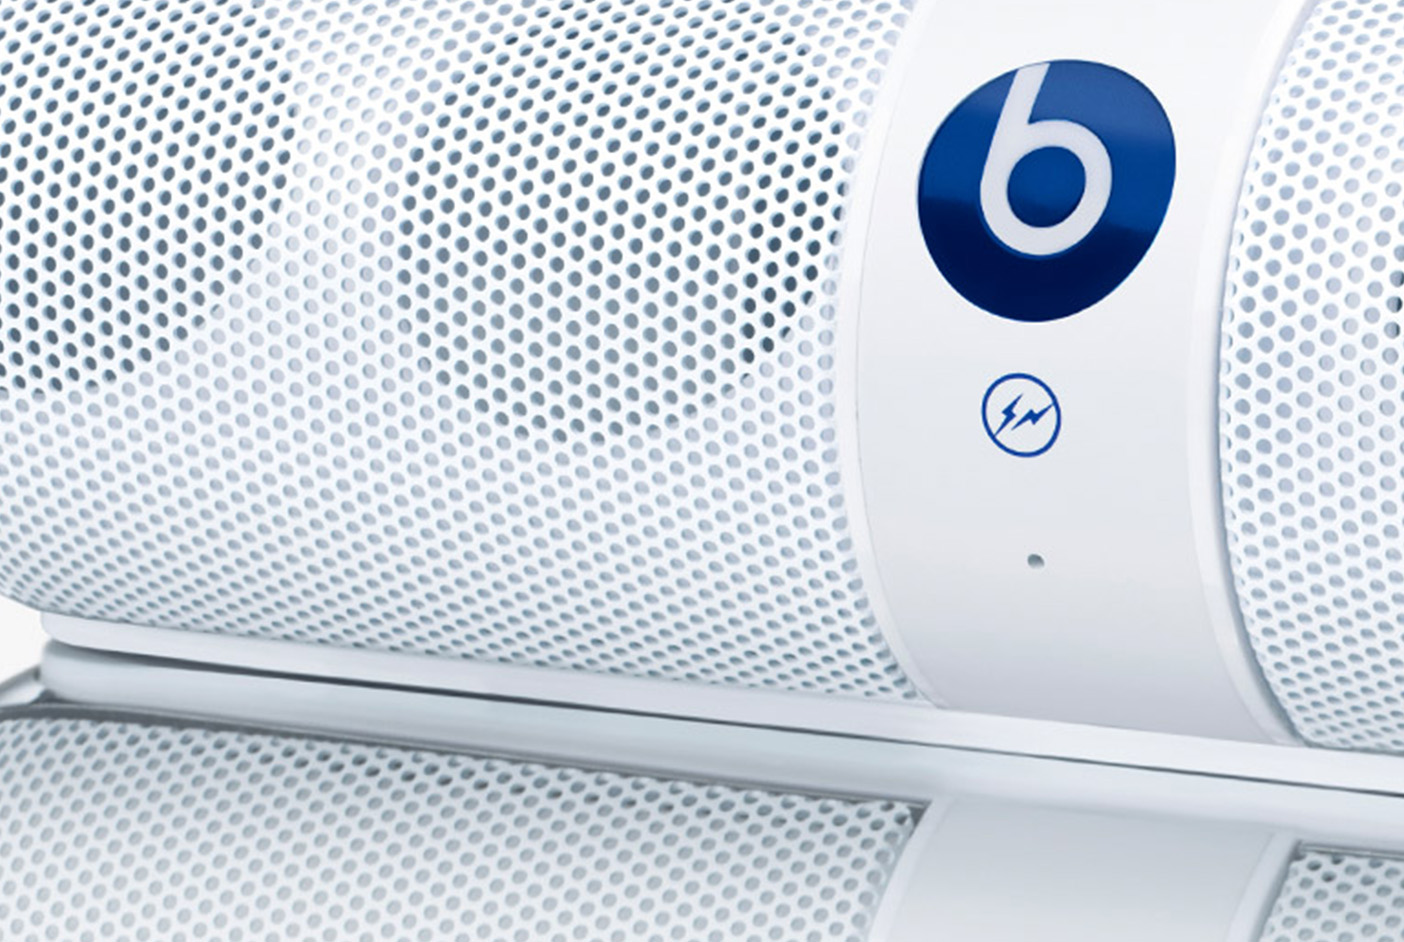 Collaborations - Beats by Dre